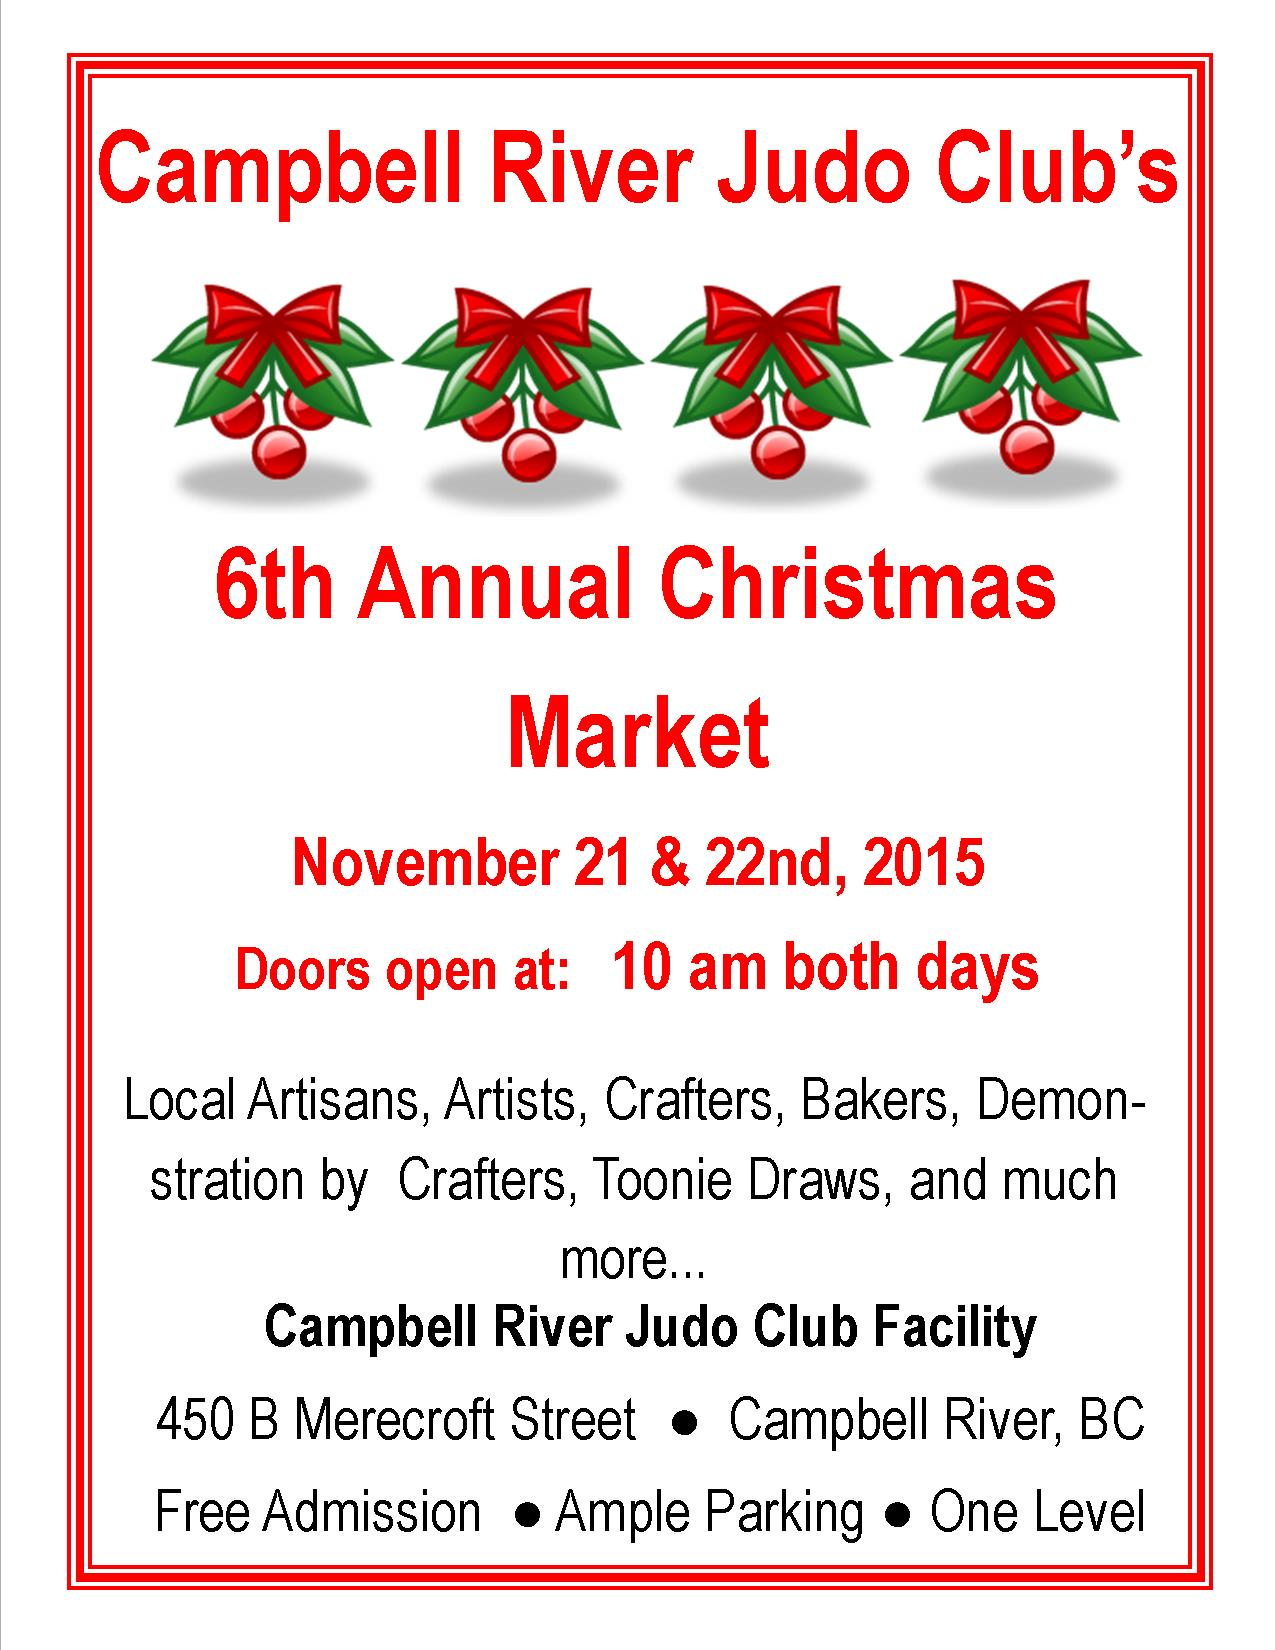 Campbell River Judo Club's 6th Annual Christmas Market - My Campbell